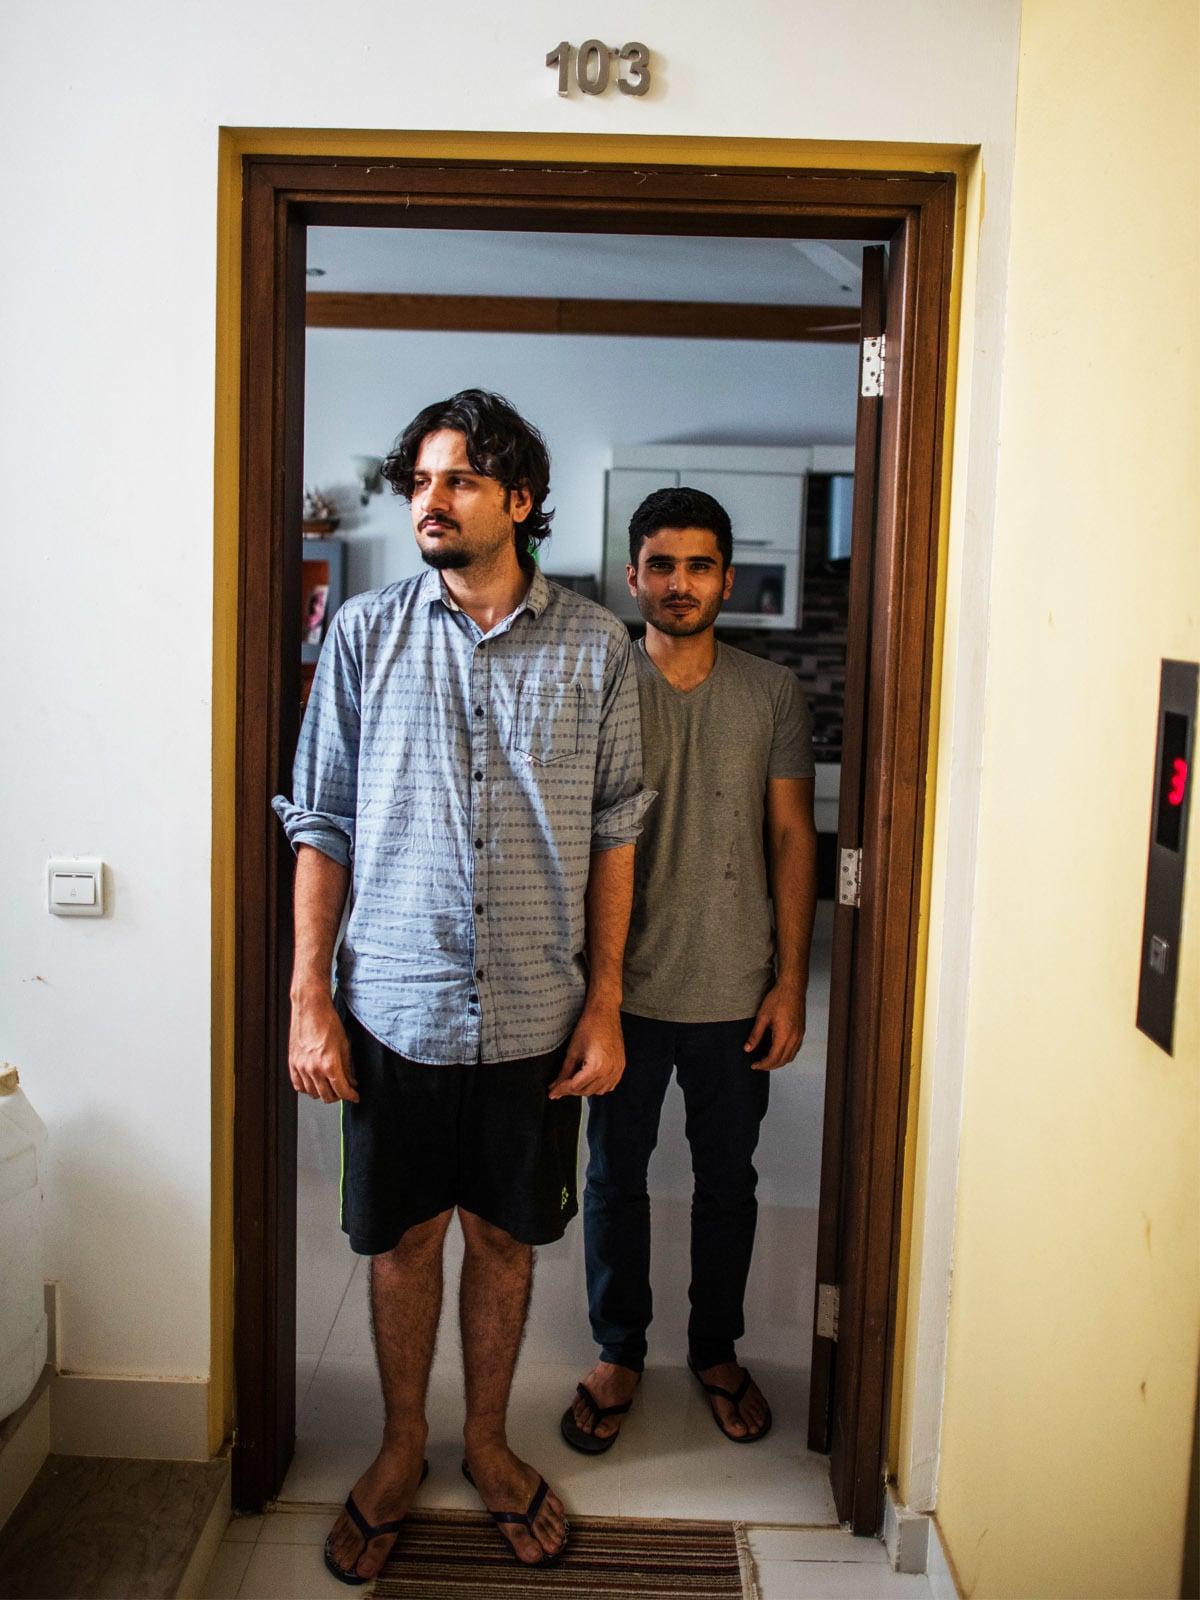 Nadir Shahzad (left) of the band Sikandar ka Mandar stands with musician Shajie Hassan (right) | Mohammad Ali, White Star